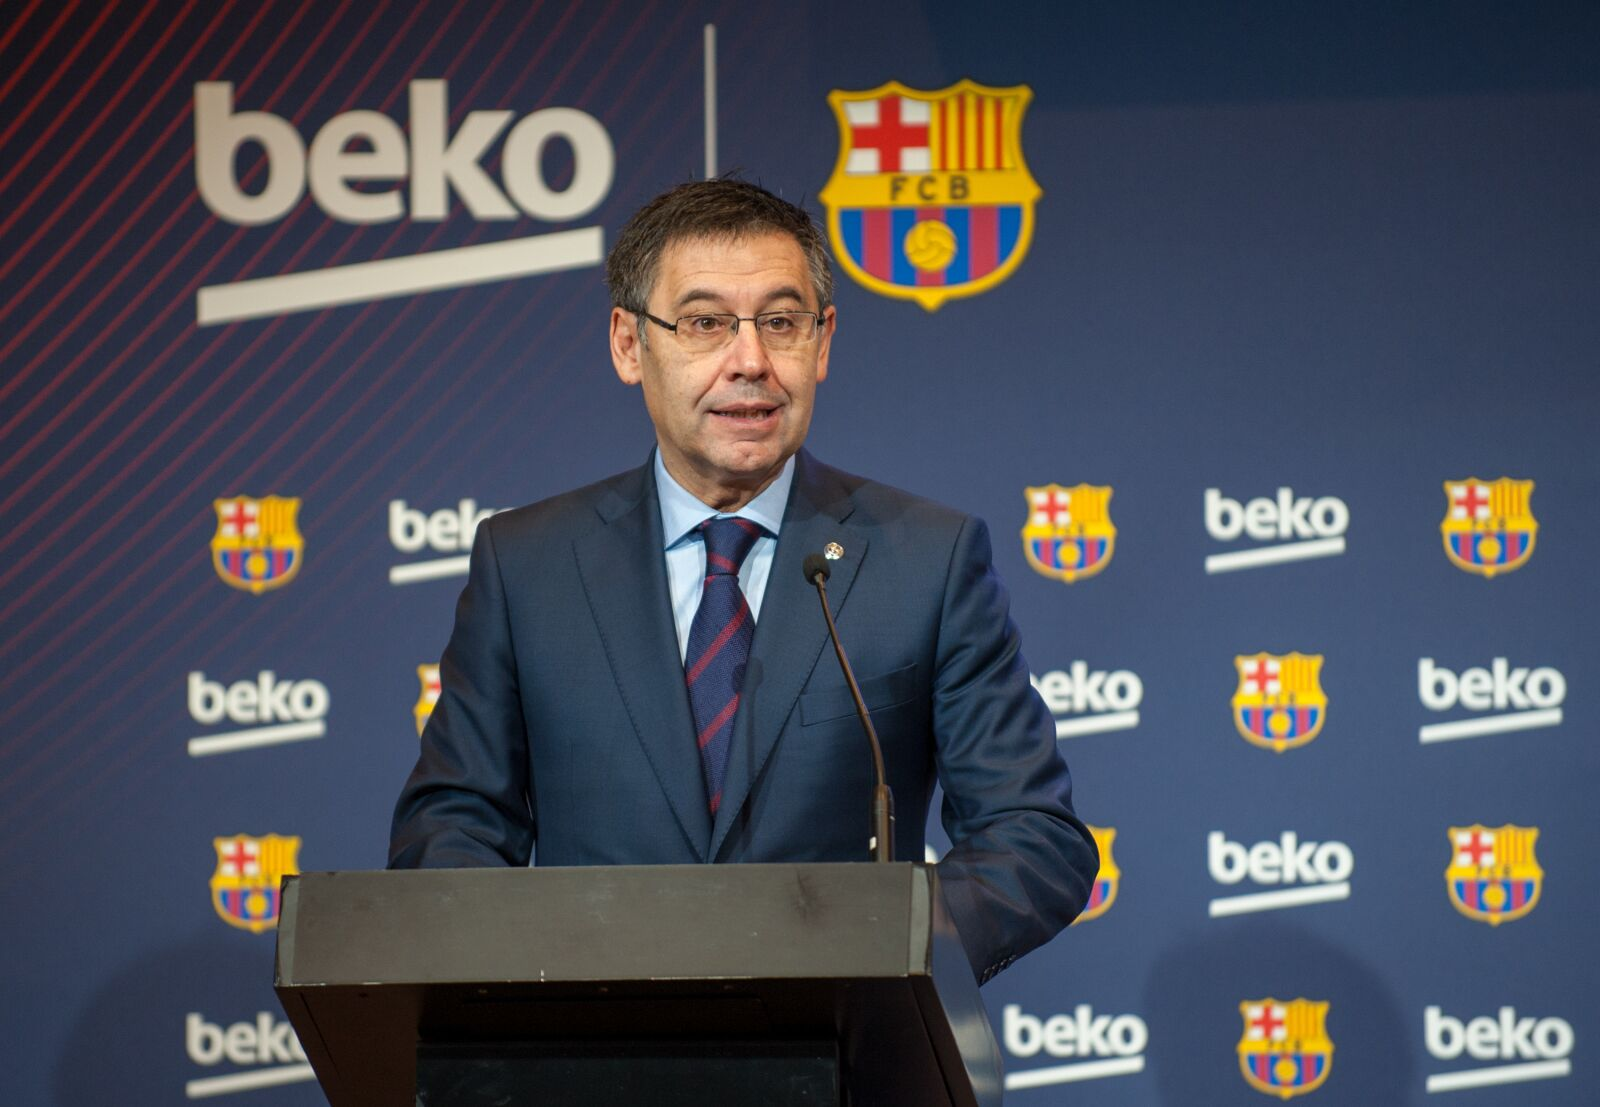 Barcelona extending ties with the clubs they should least bother about